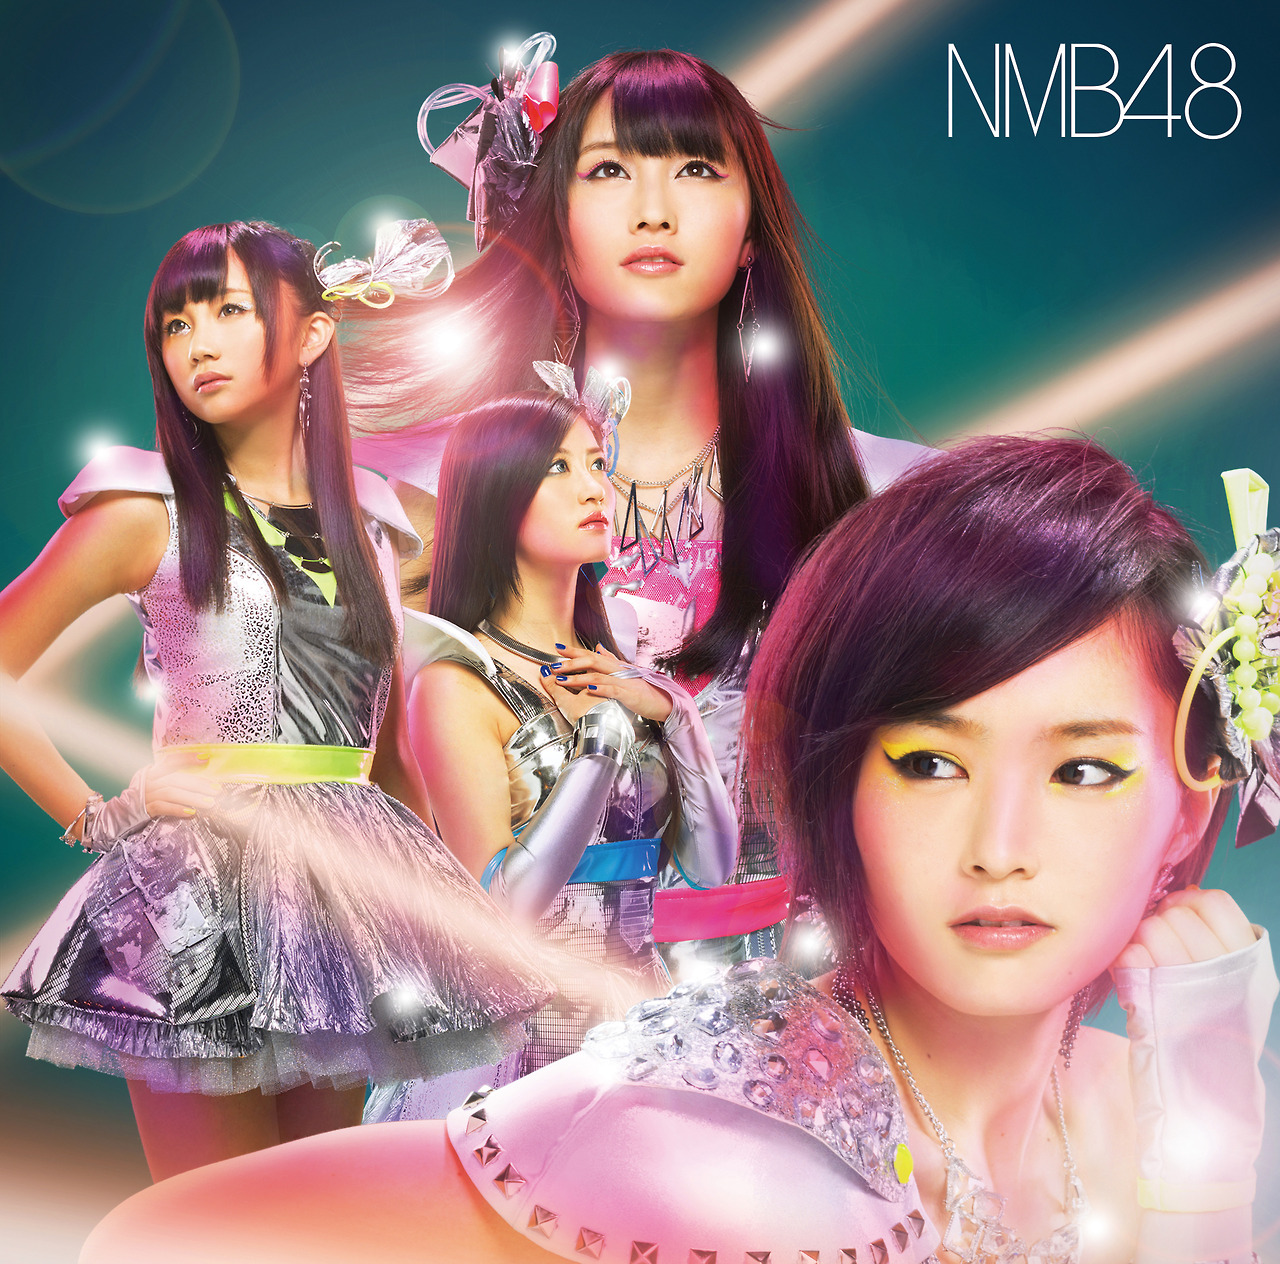 NMB48's 8th single: Kamonegix